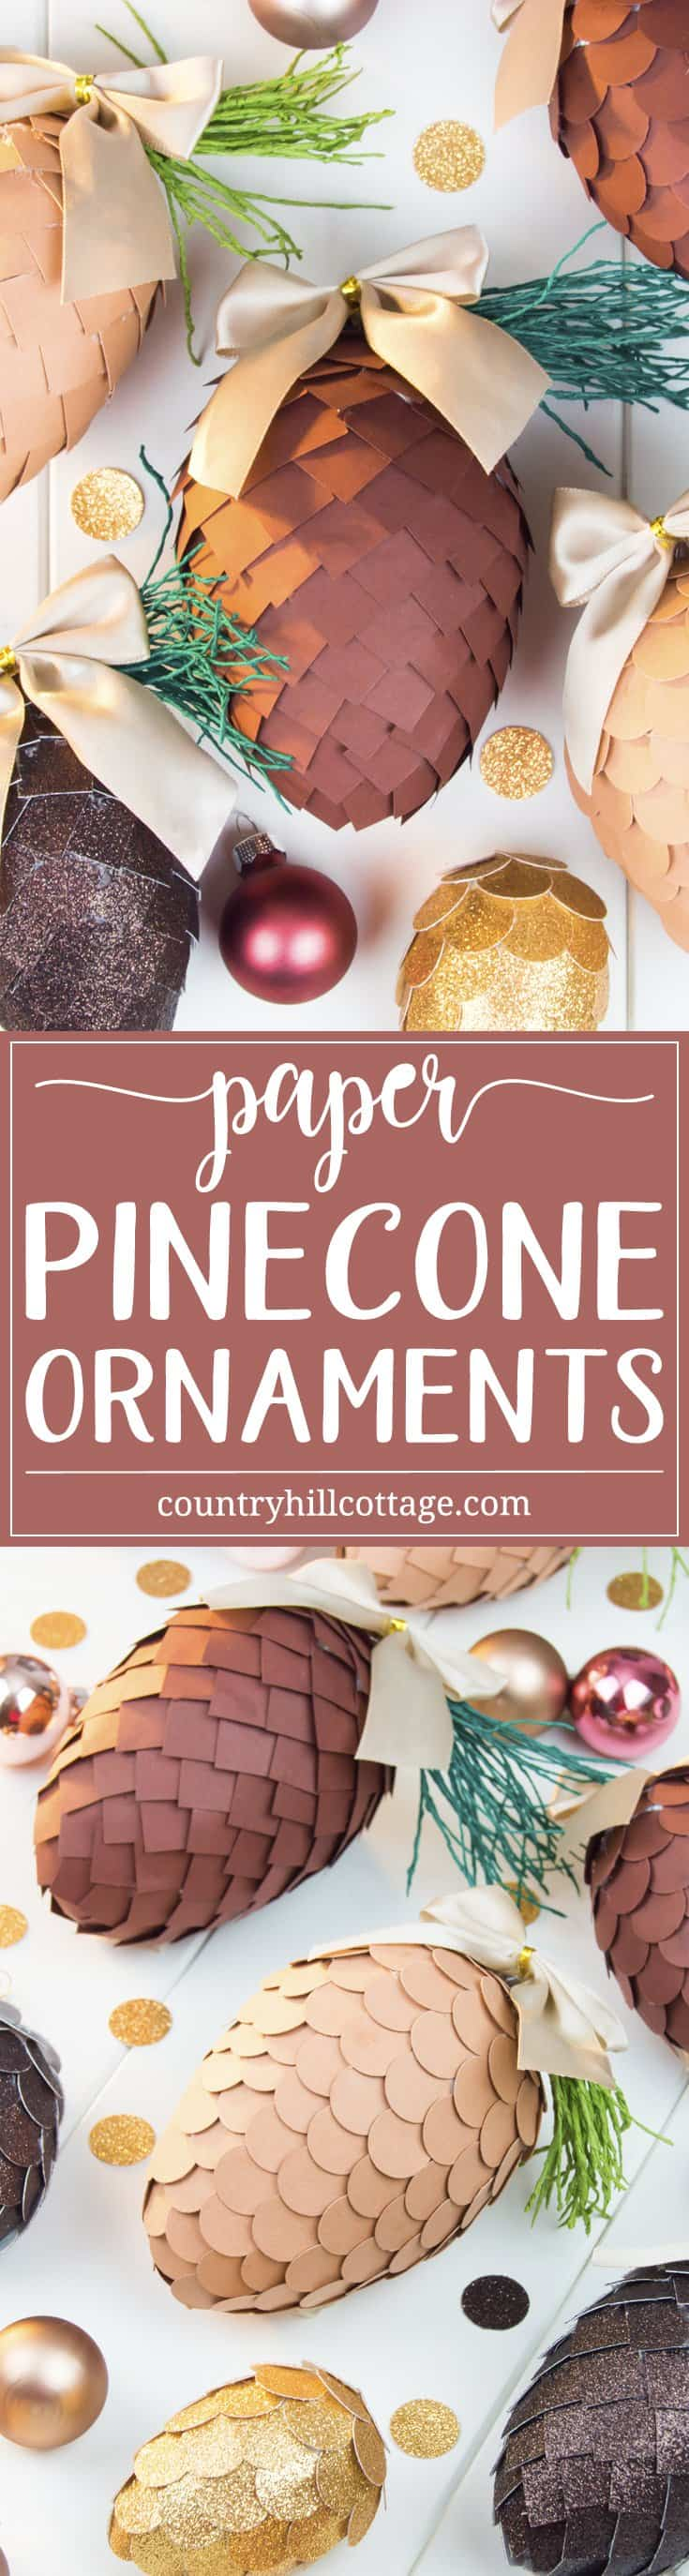 Learn how to make paper pinecone ornaments that you can use to decorate your Christmas tree or for packaging gifts. The ornaments are made by applying small paper squares or circles on polystyrene eggs. You can choose any size of egg shape and use a wide variety of papers for the scales, such as cardstock, scrapbook paper, glitter paper, or gift wrap. We also demonstrate how to make pine needles form crepe paper to decorate the ornaments. #DIY #pinecone #papercrafts | countryhillcottage.com